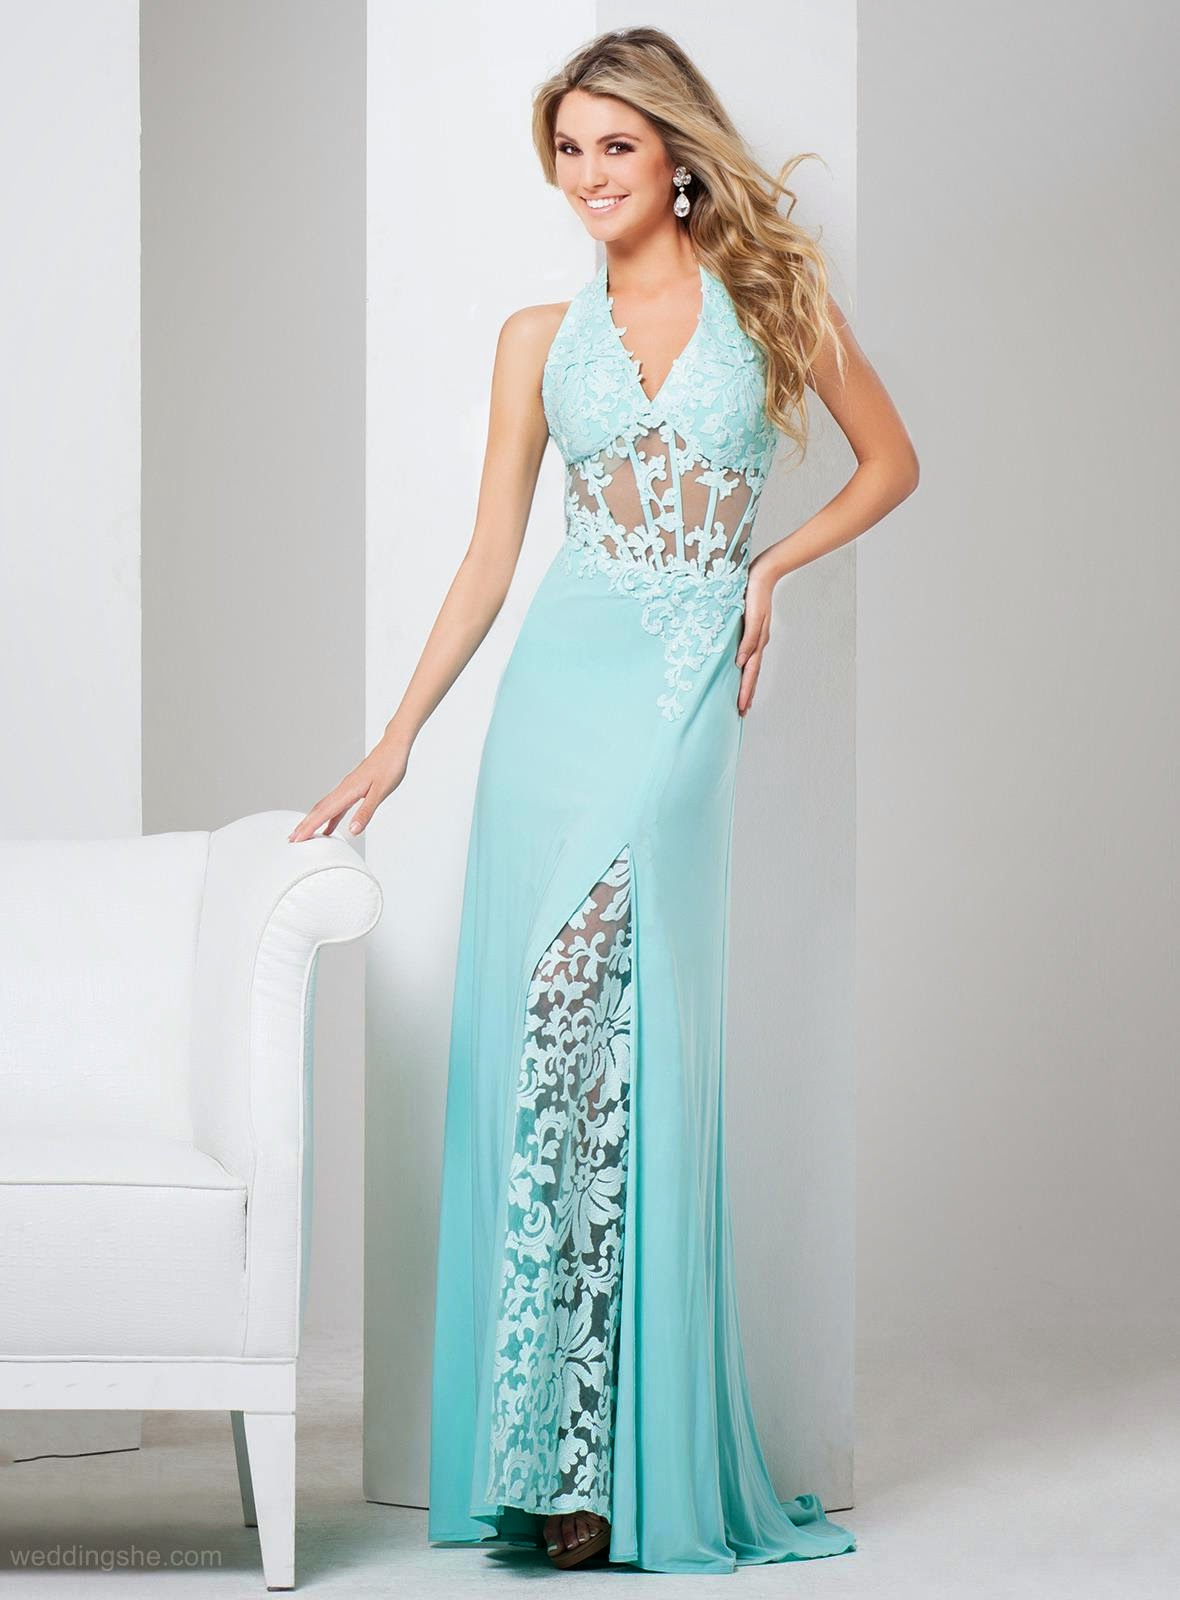 Evening dresses for spring/summer - Chamber of beauty